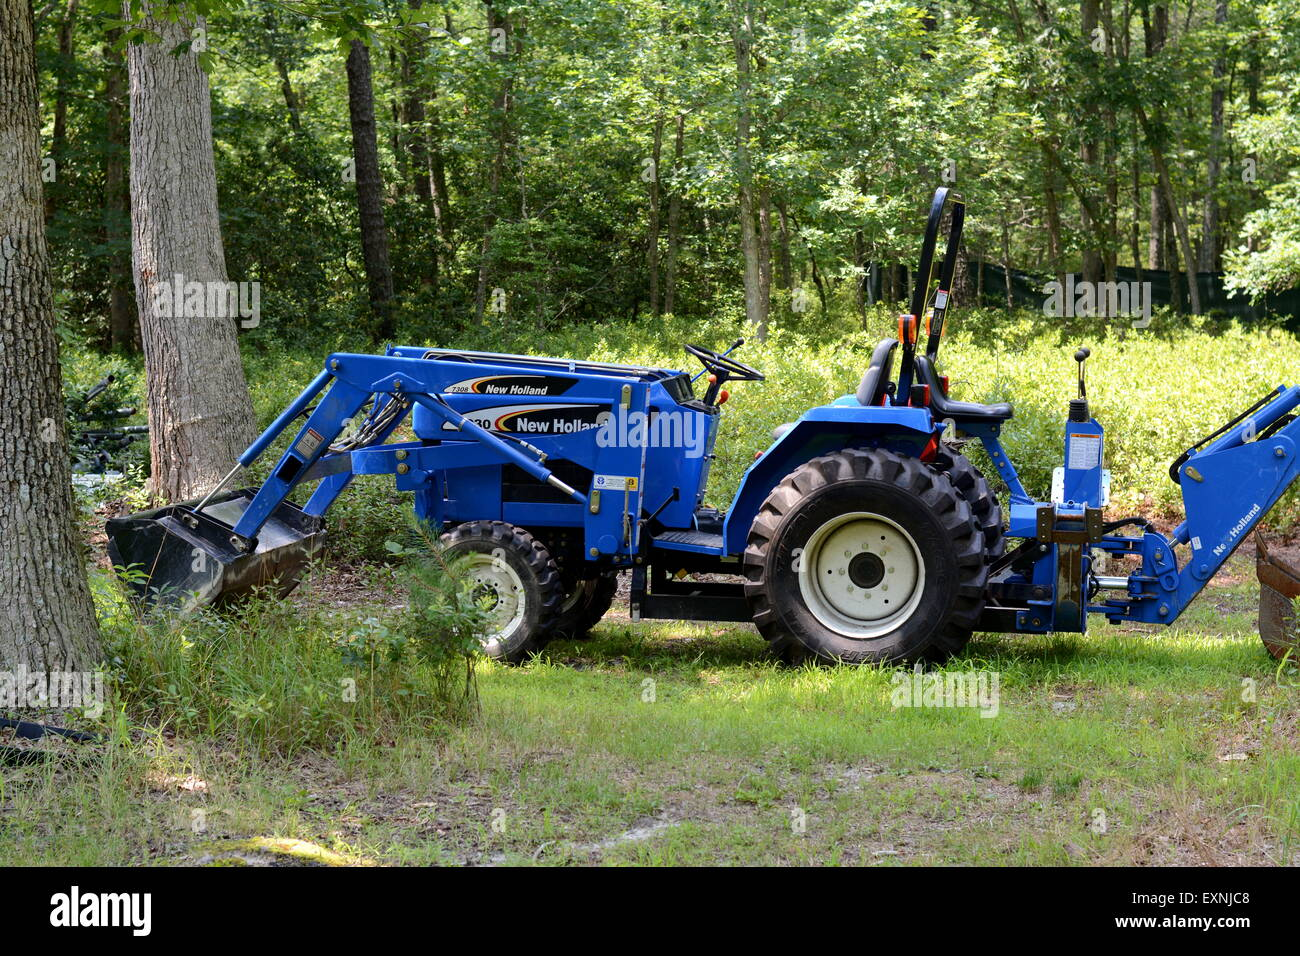 A Tractor for moving dirt and digging - Stock Image